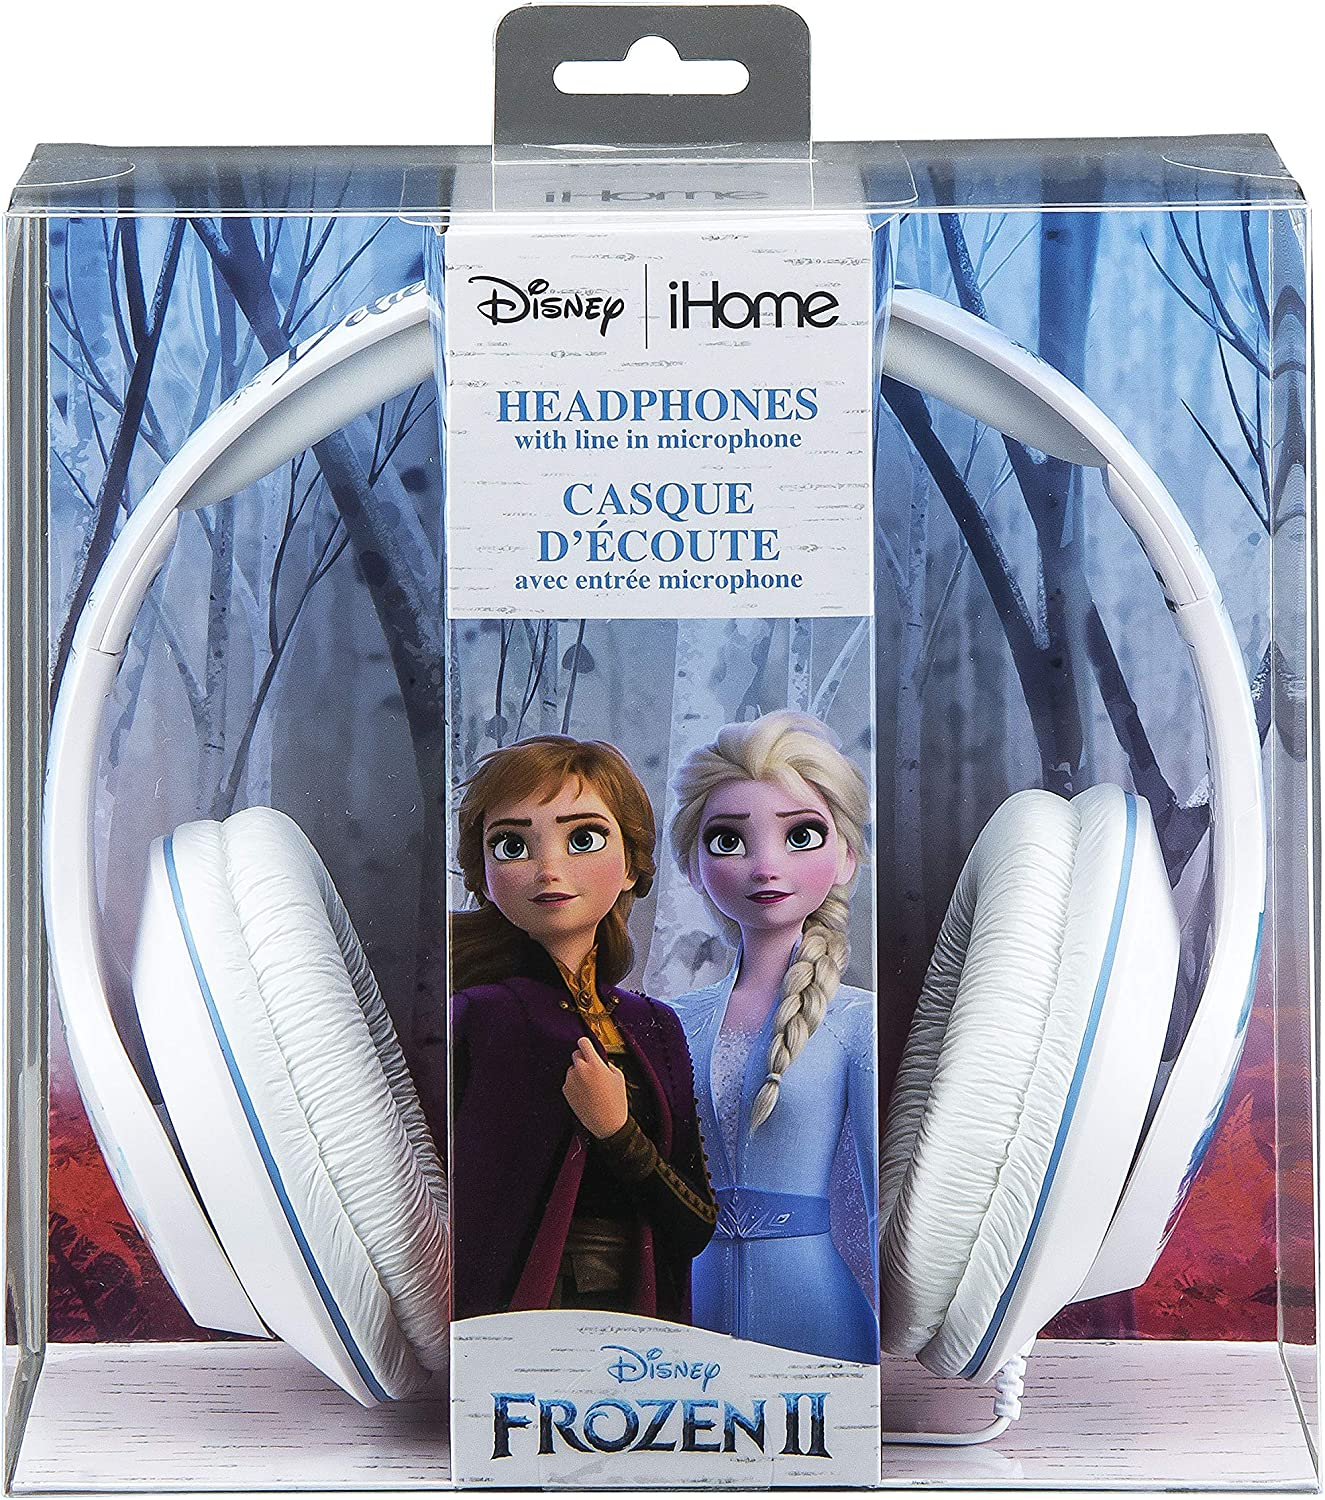 Frozen 2 Kids Headphones with Microphone, Adjustable Headband, Stereo Sound, 3.5mm Jack, Wired Headphones For Kids, Tangle-Free, Volume Control, Foldable, Childrens Headphones on ear, School Home, Tra